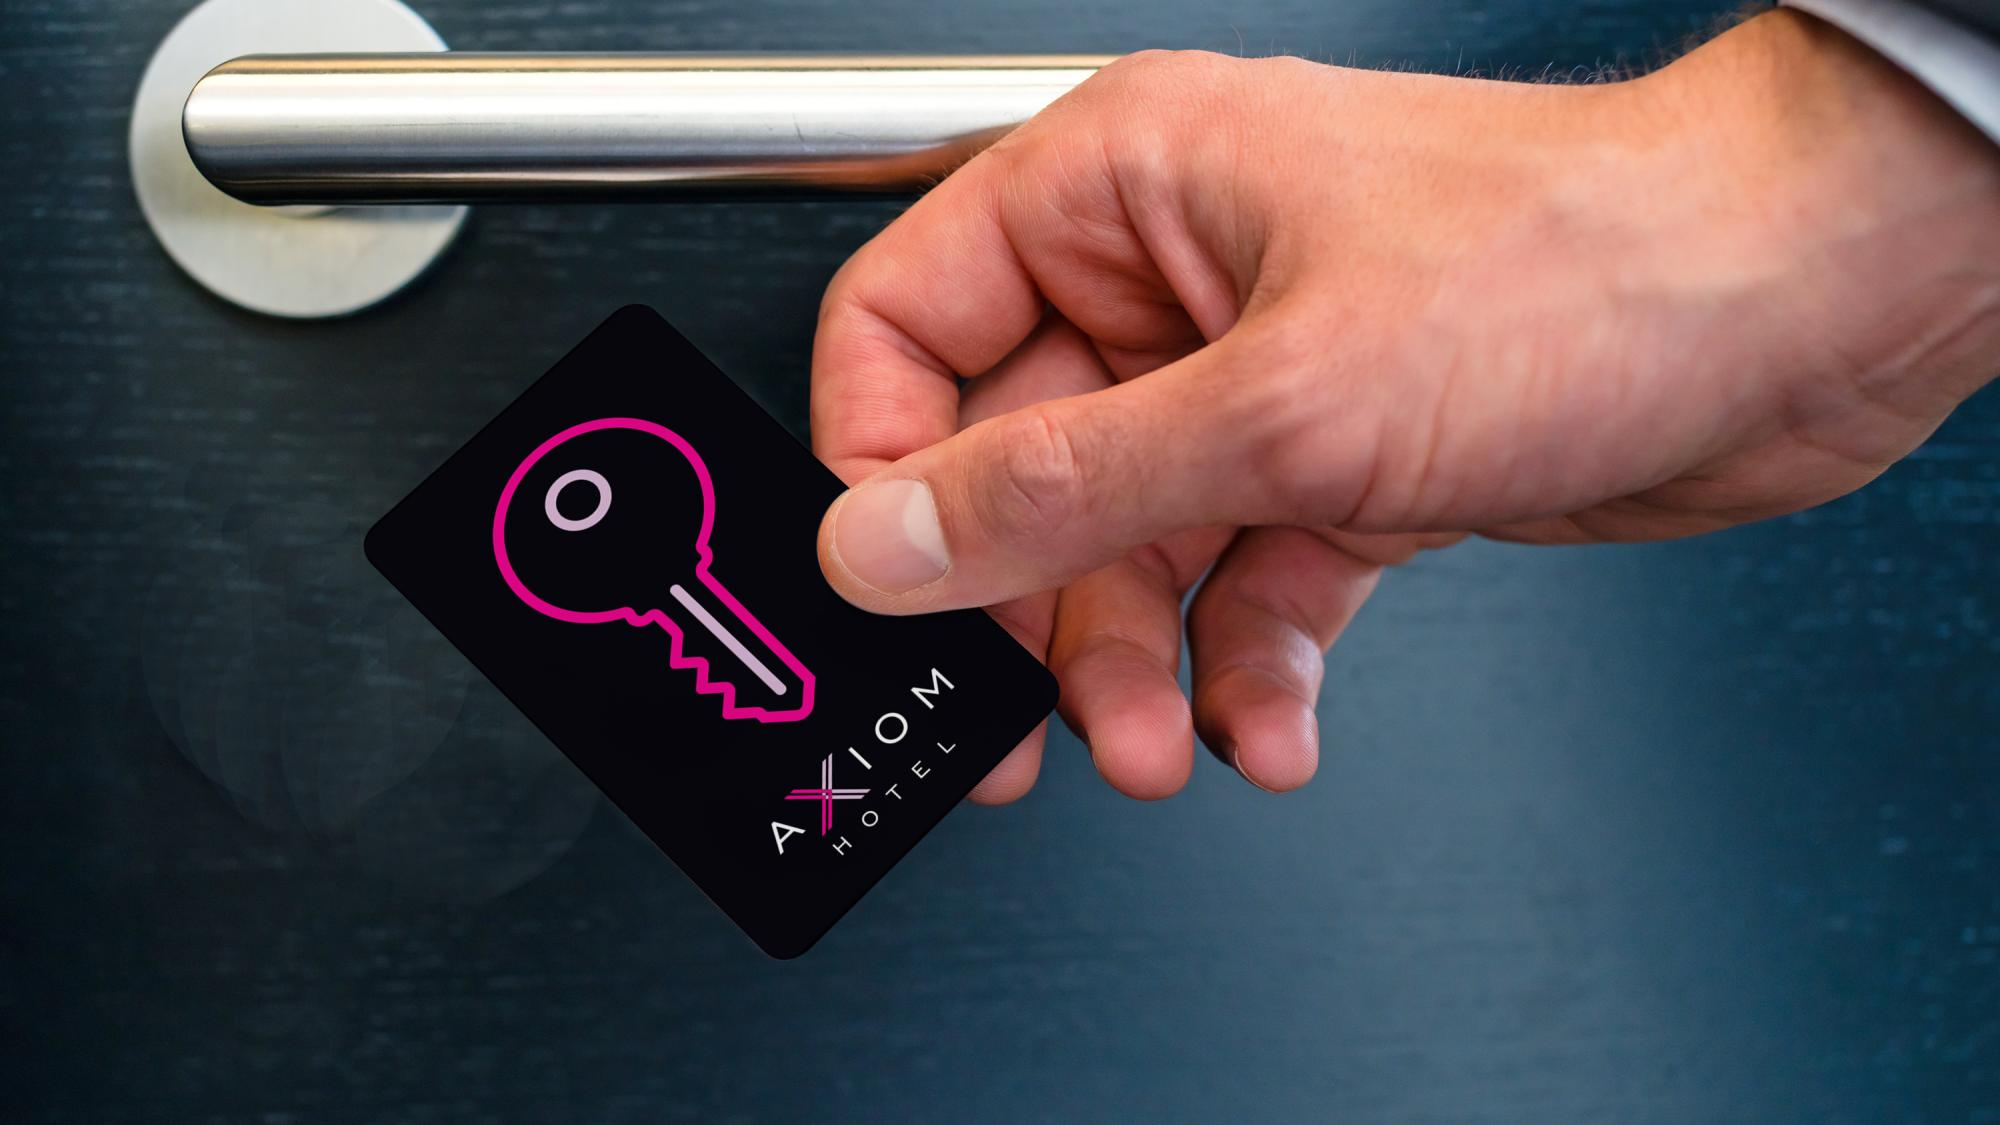 Axiom Key Card